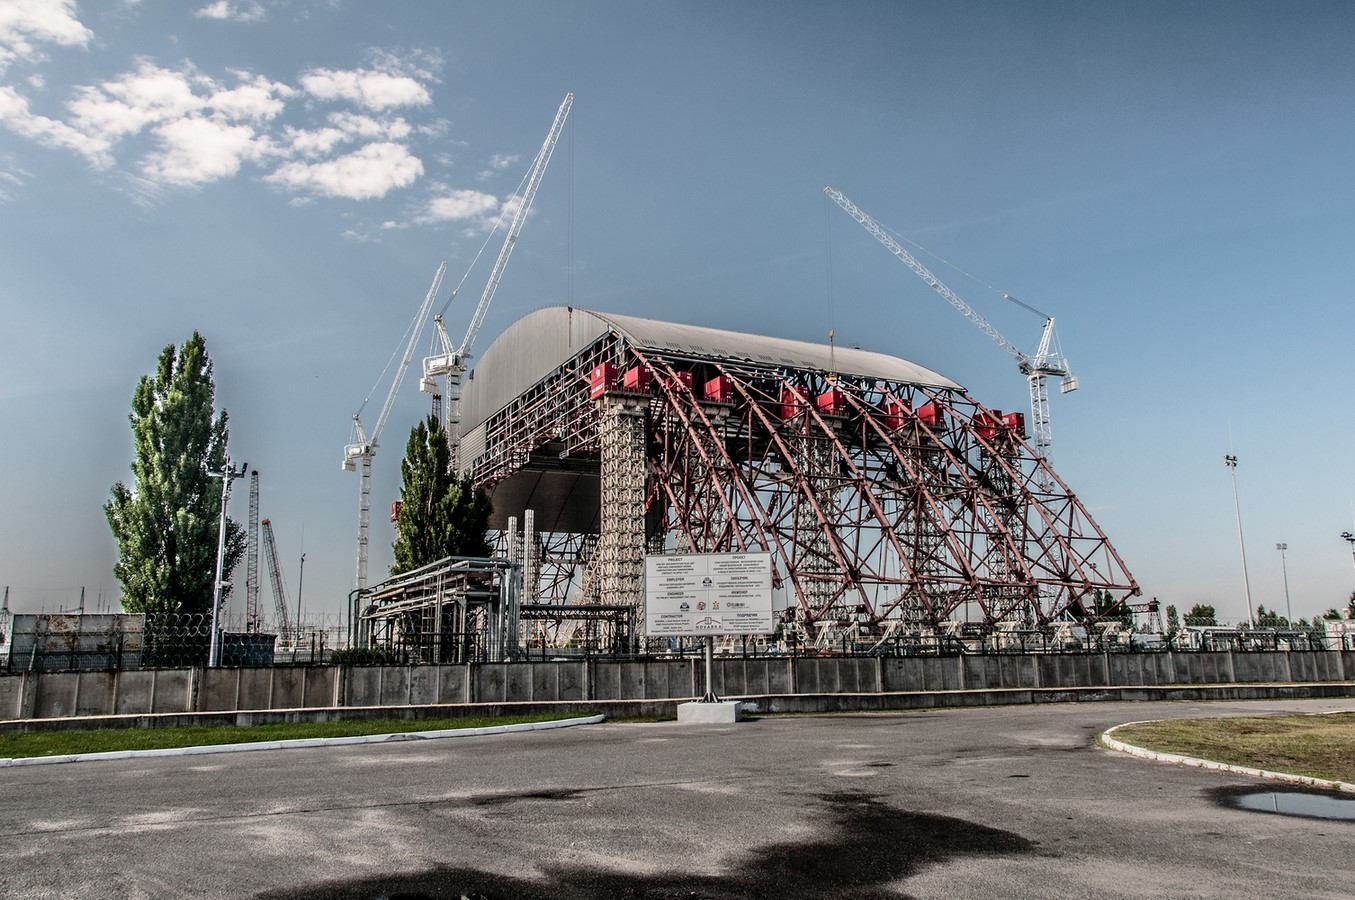 Chernobyl: What remains of the place? - Sheet4